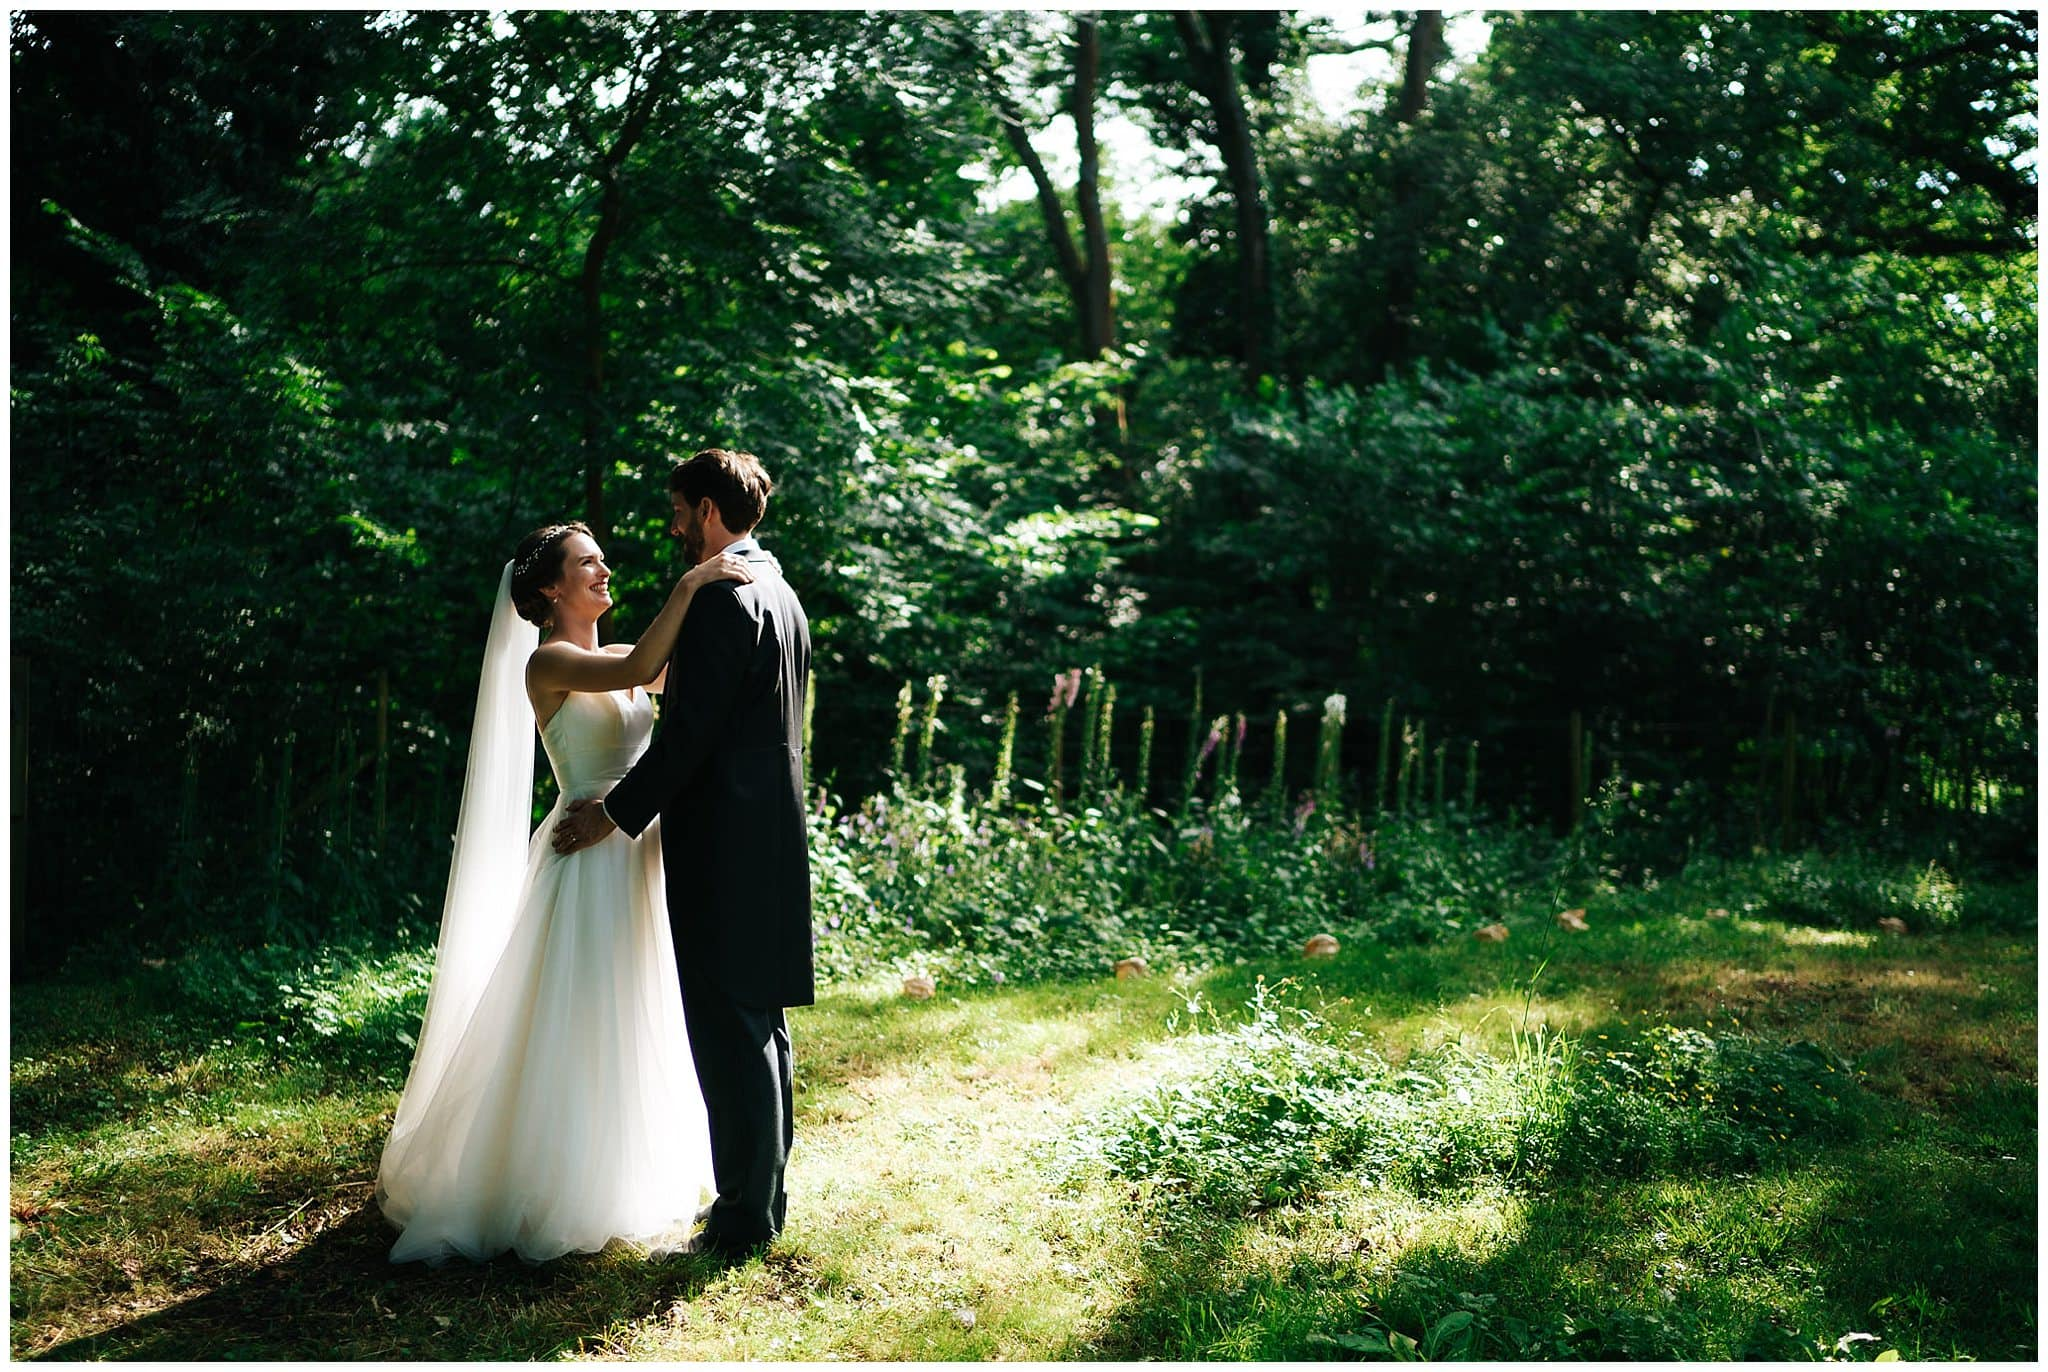 Winchester wedding photography of a couple in a sunlit garden